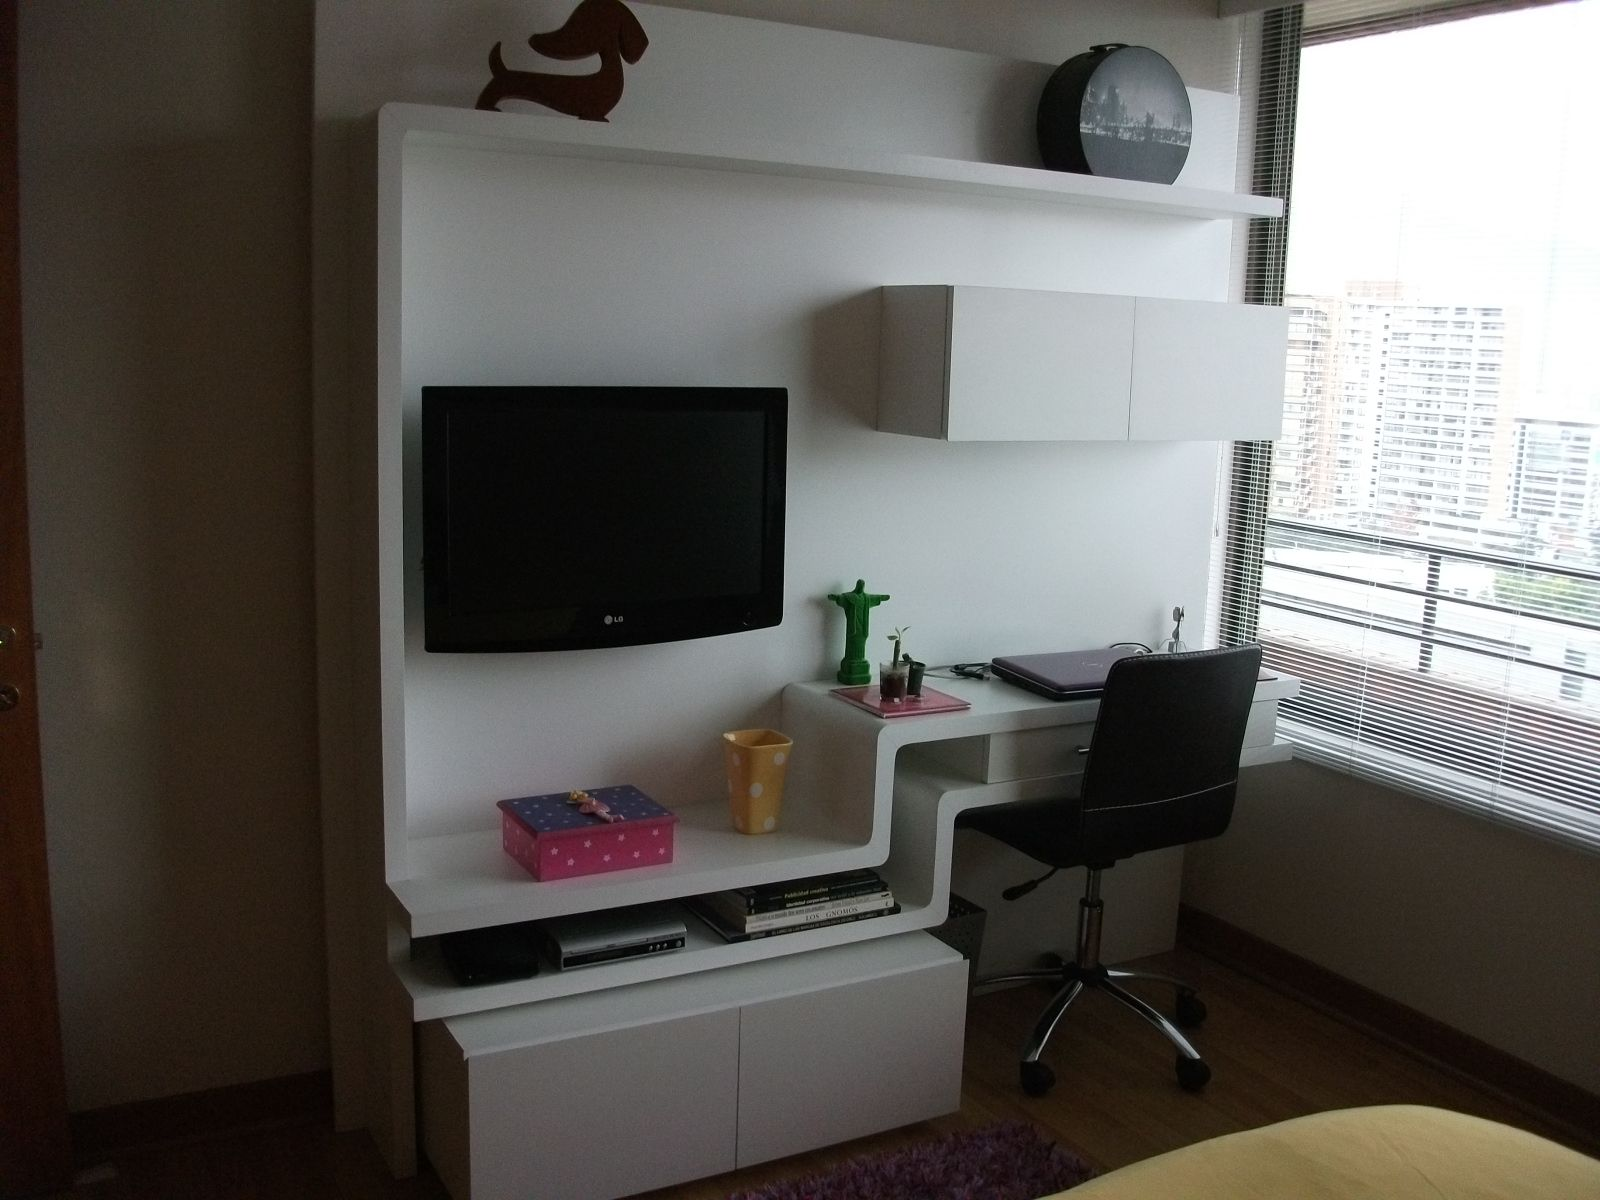 Sistema de muebles para escritorio y tv escritorio con for Mueble para escritorio